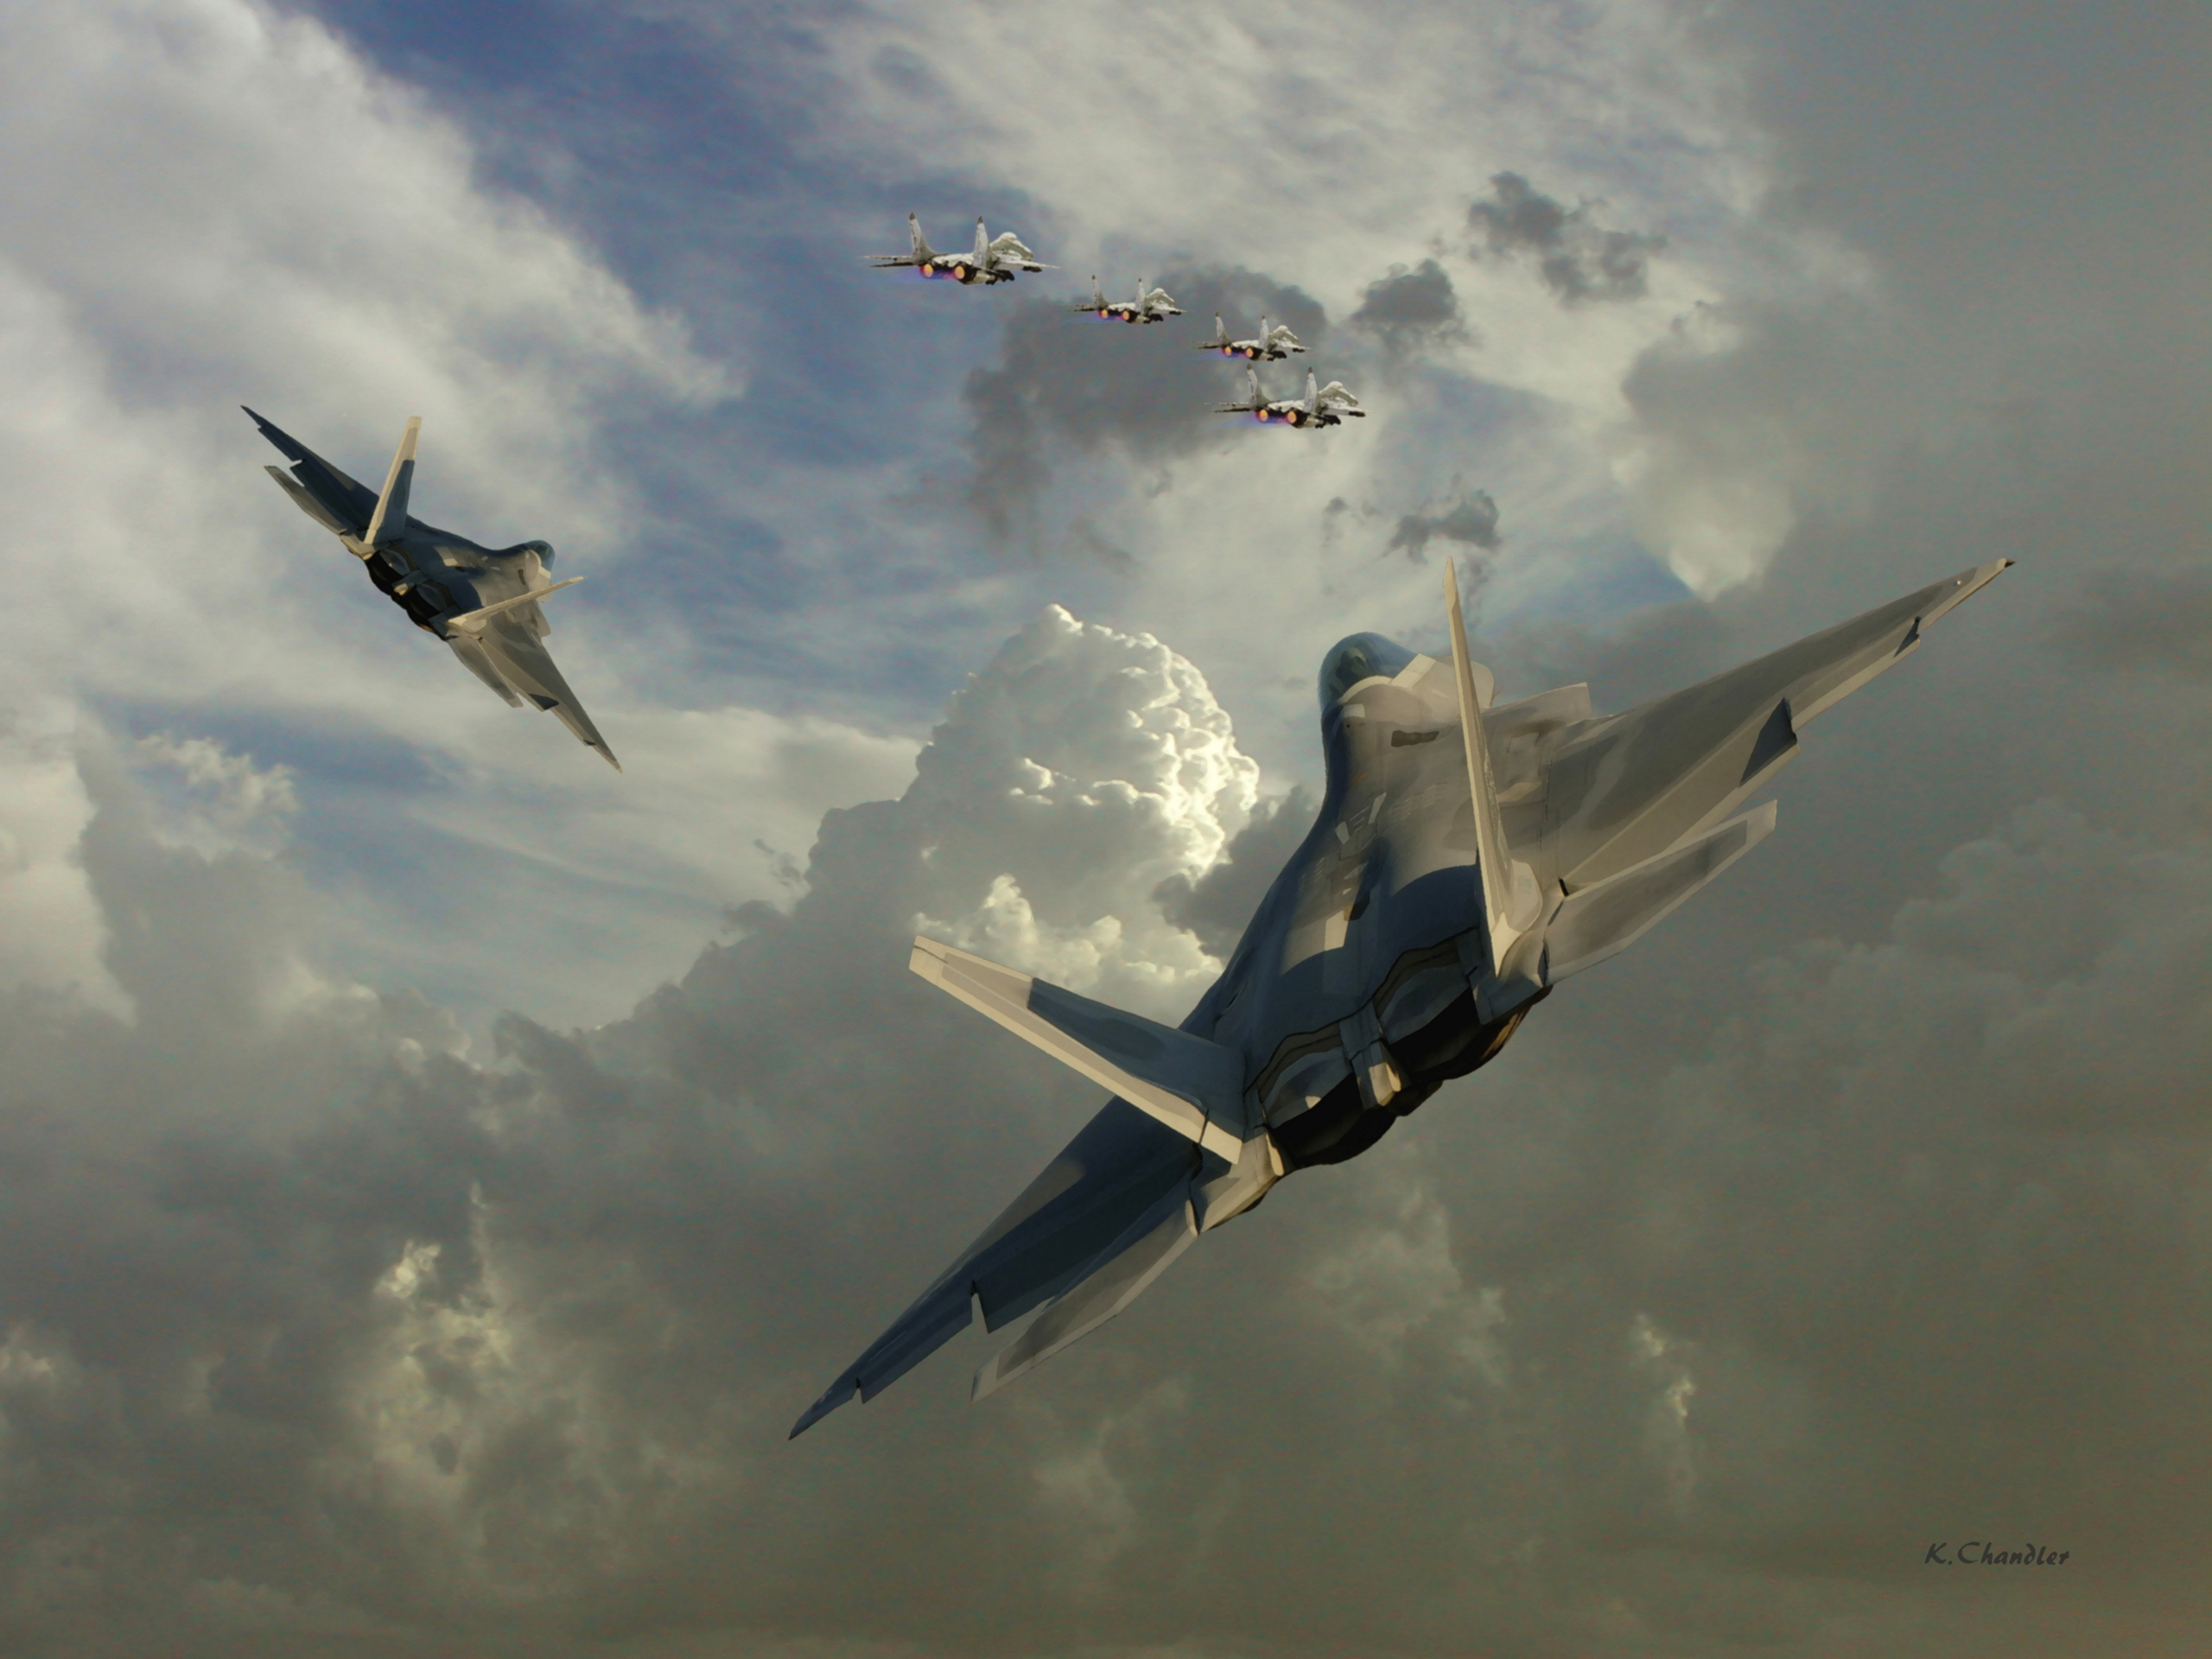 38 lockheed martin f-22 raptor hd wallpapers | background images